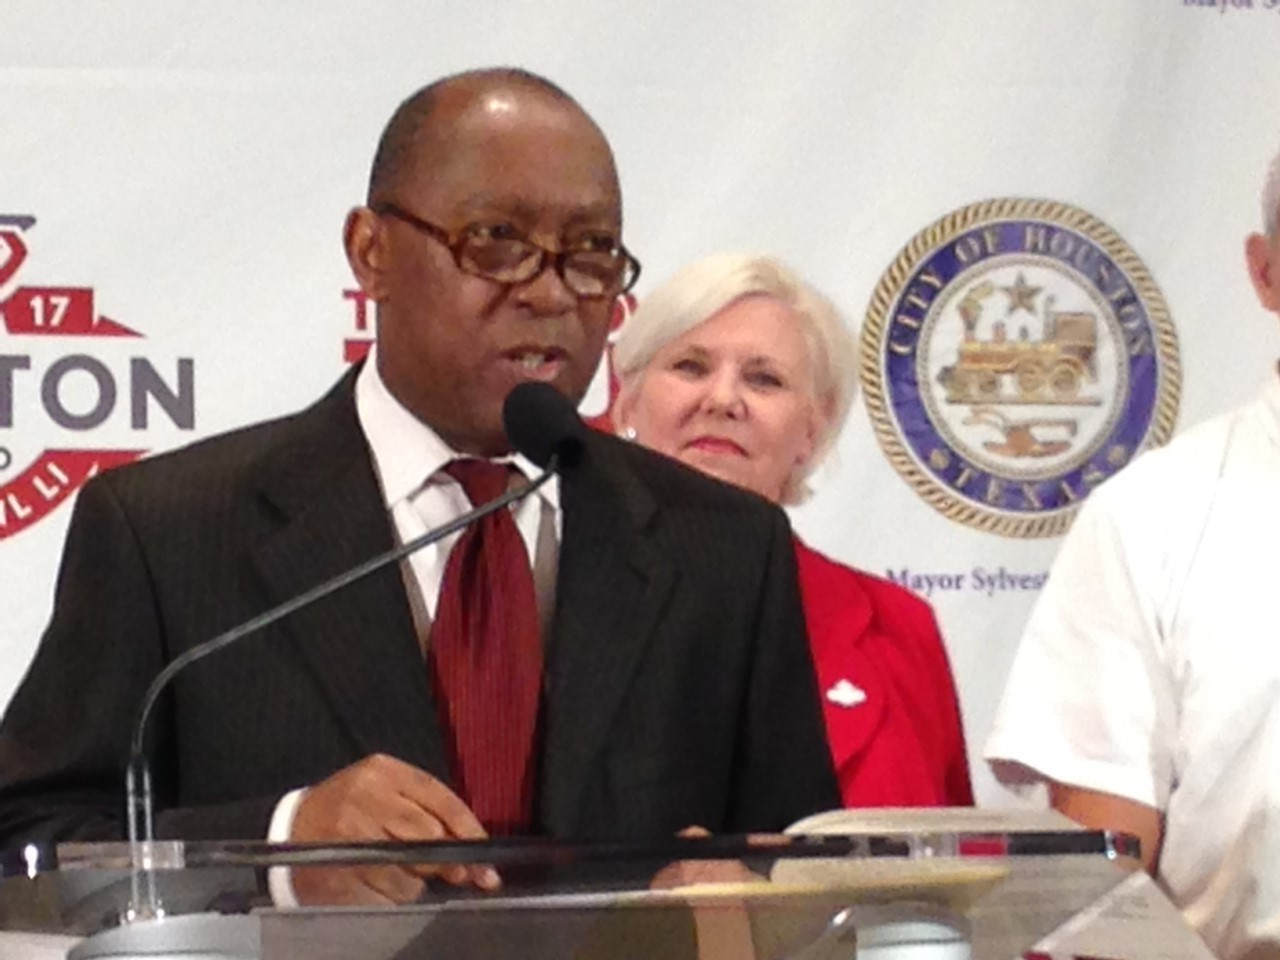 Houston Mayor Sylvester Turner reacted to the opposition from the Houston Firefighters' Relief and Retirement Fund saying he has been very patient during the process of negotiating the reform.